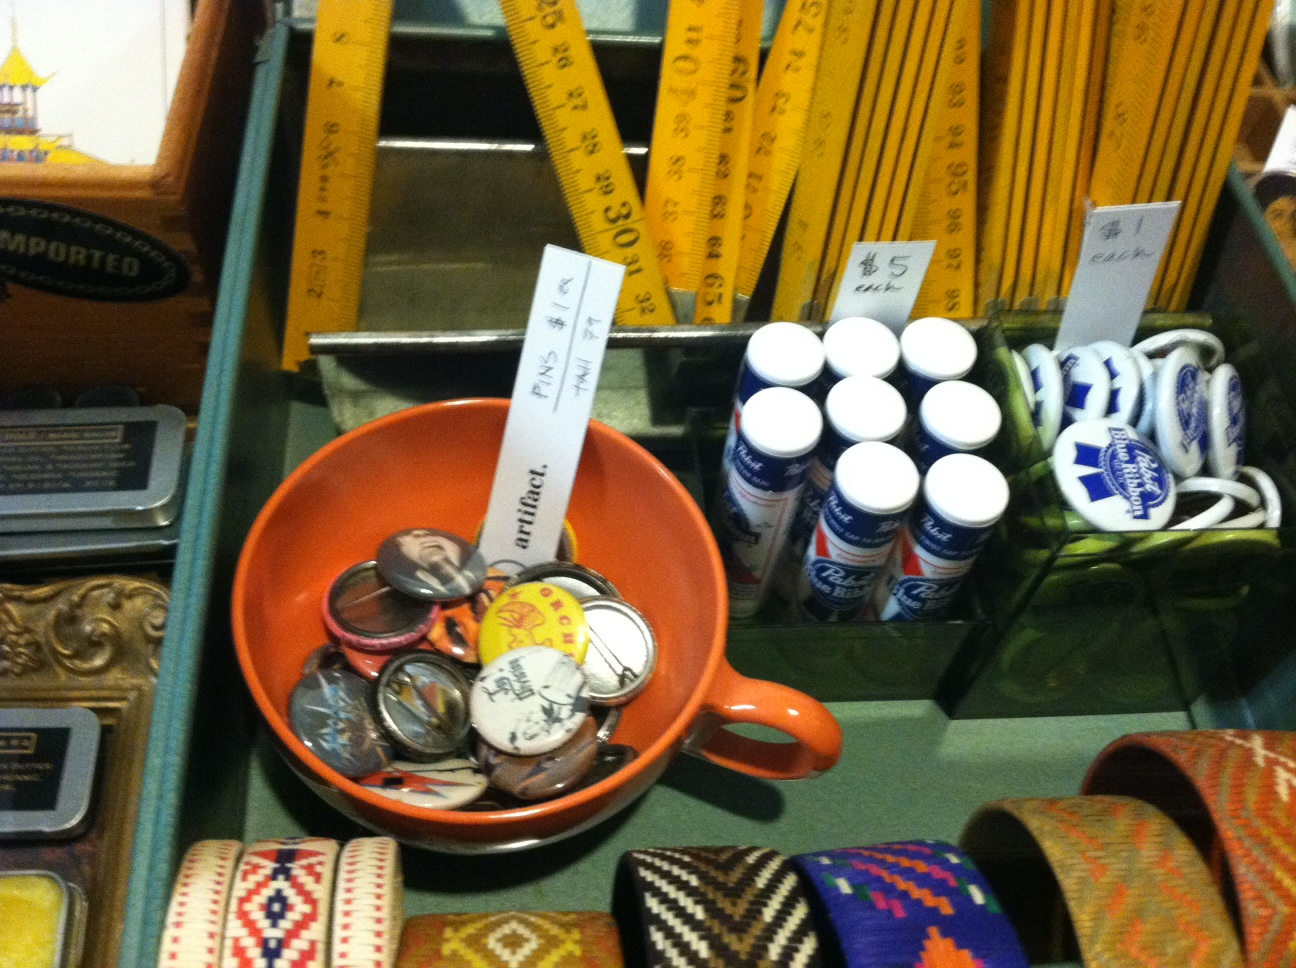 Yes, they do sell PBR chapstick, for about the same price as a cold PBR. Photo: Anastasia Friscia